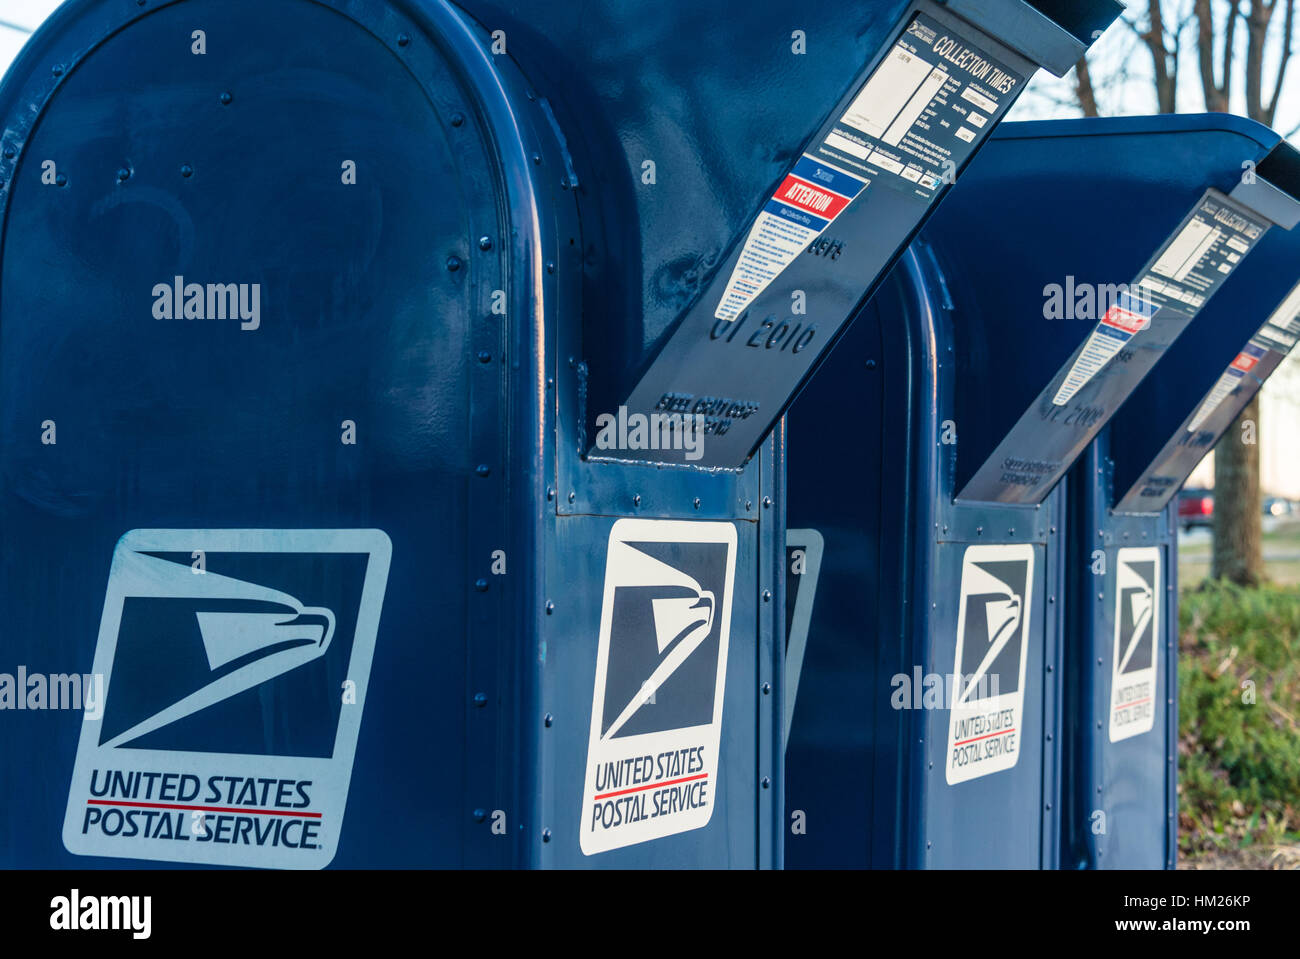 United States Postal Service High Resolution Stock Photography And